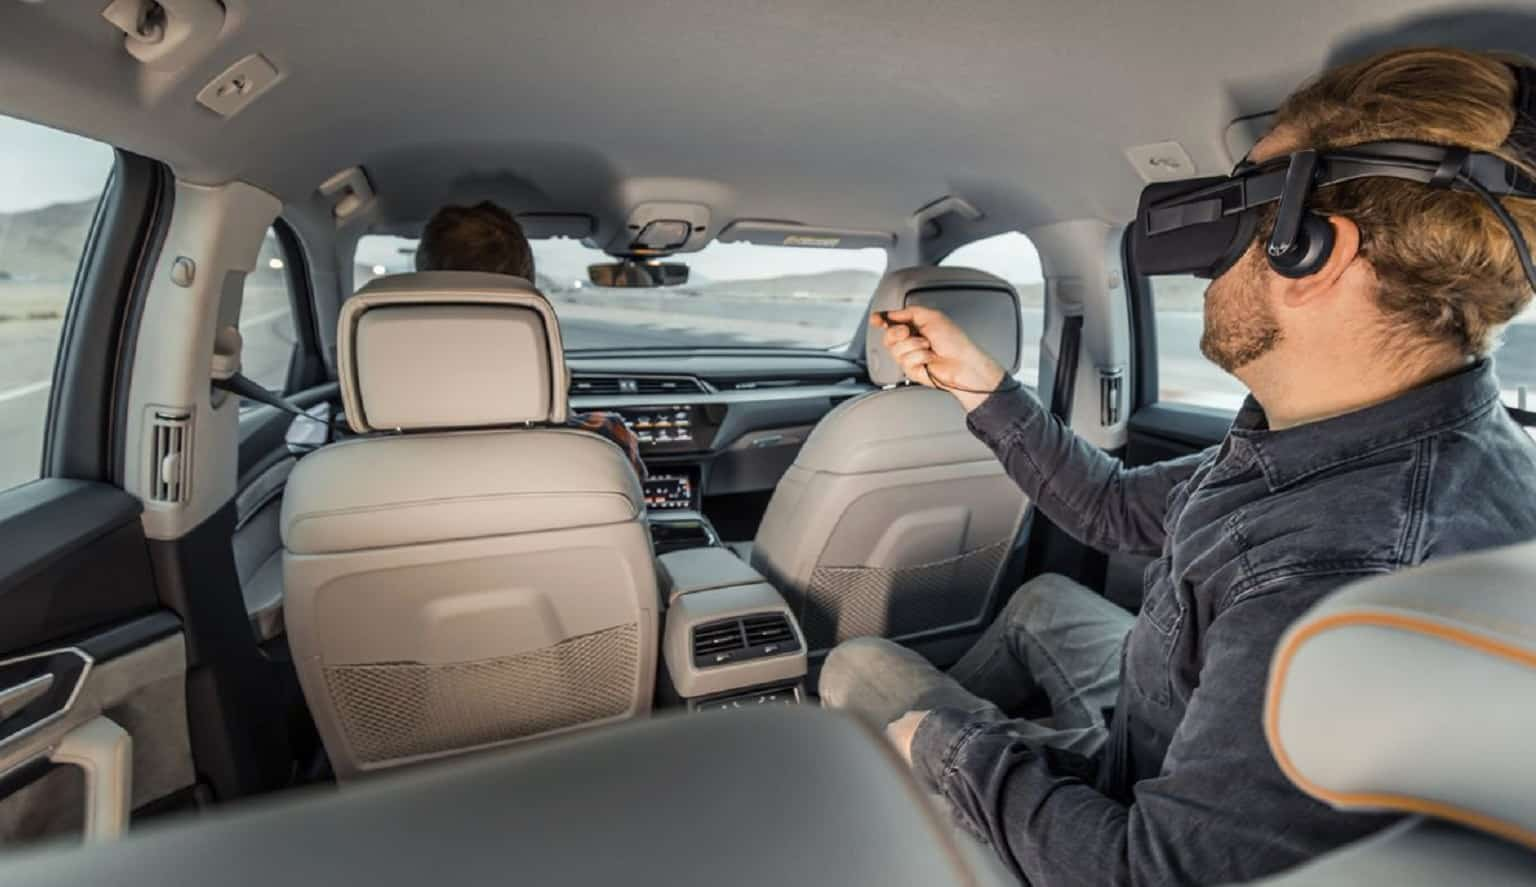 audi vr experience with person in the back seat wearing vr goggles